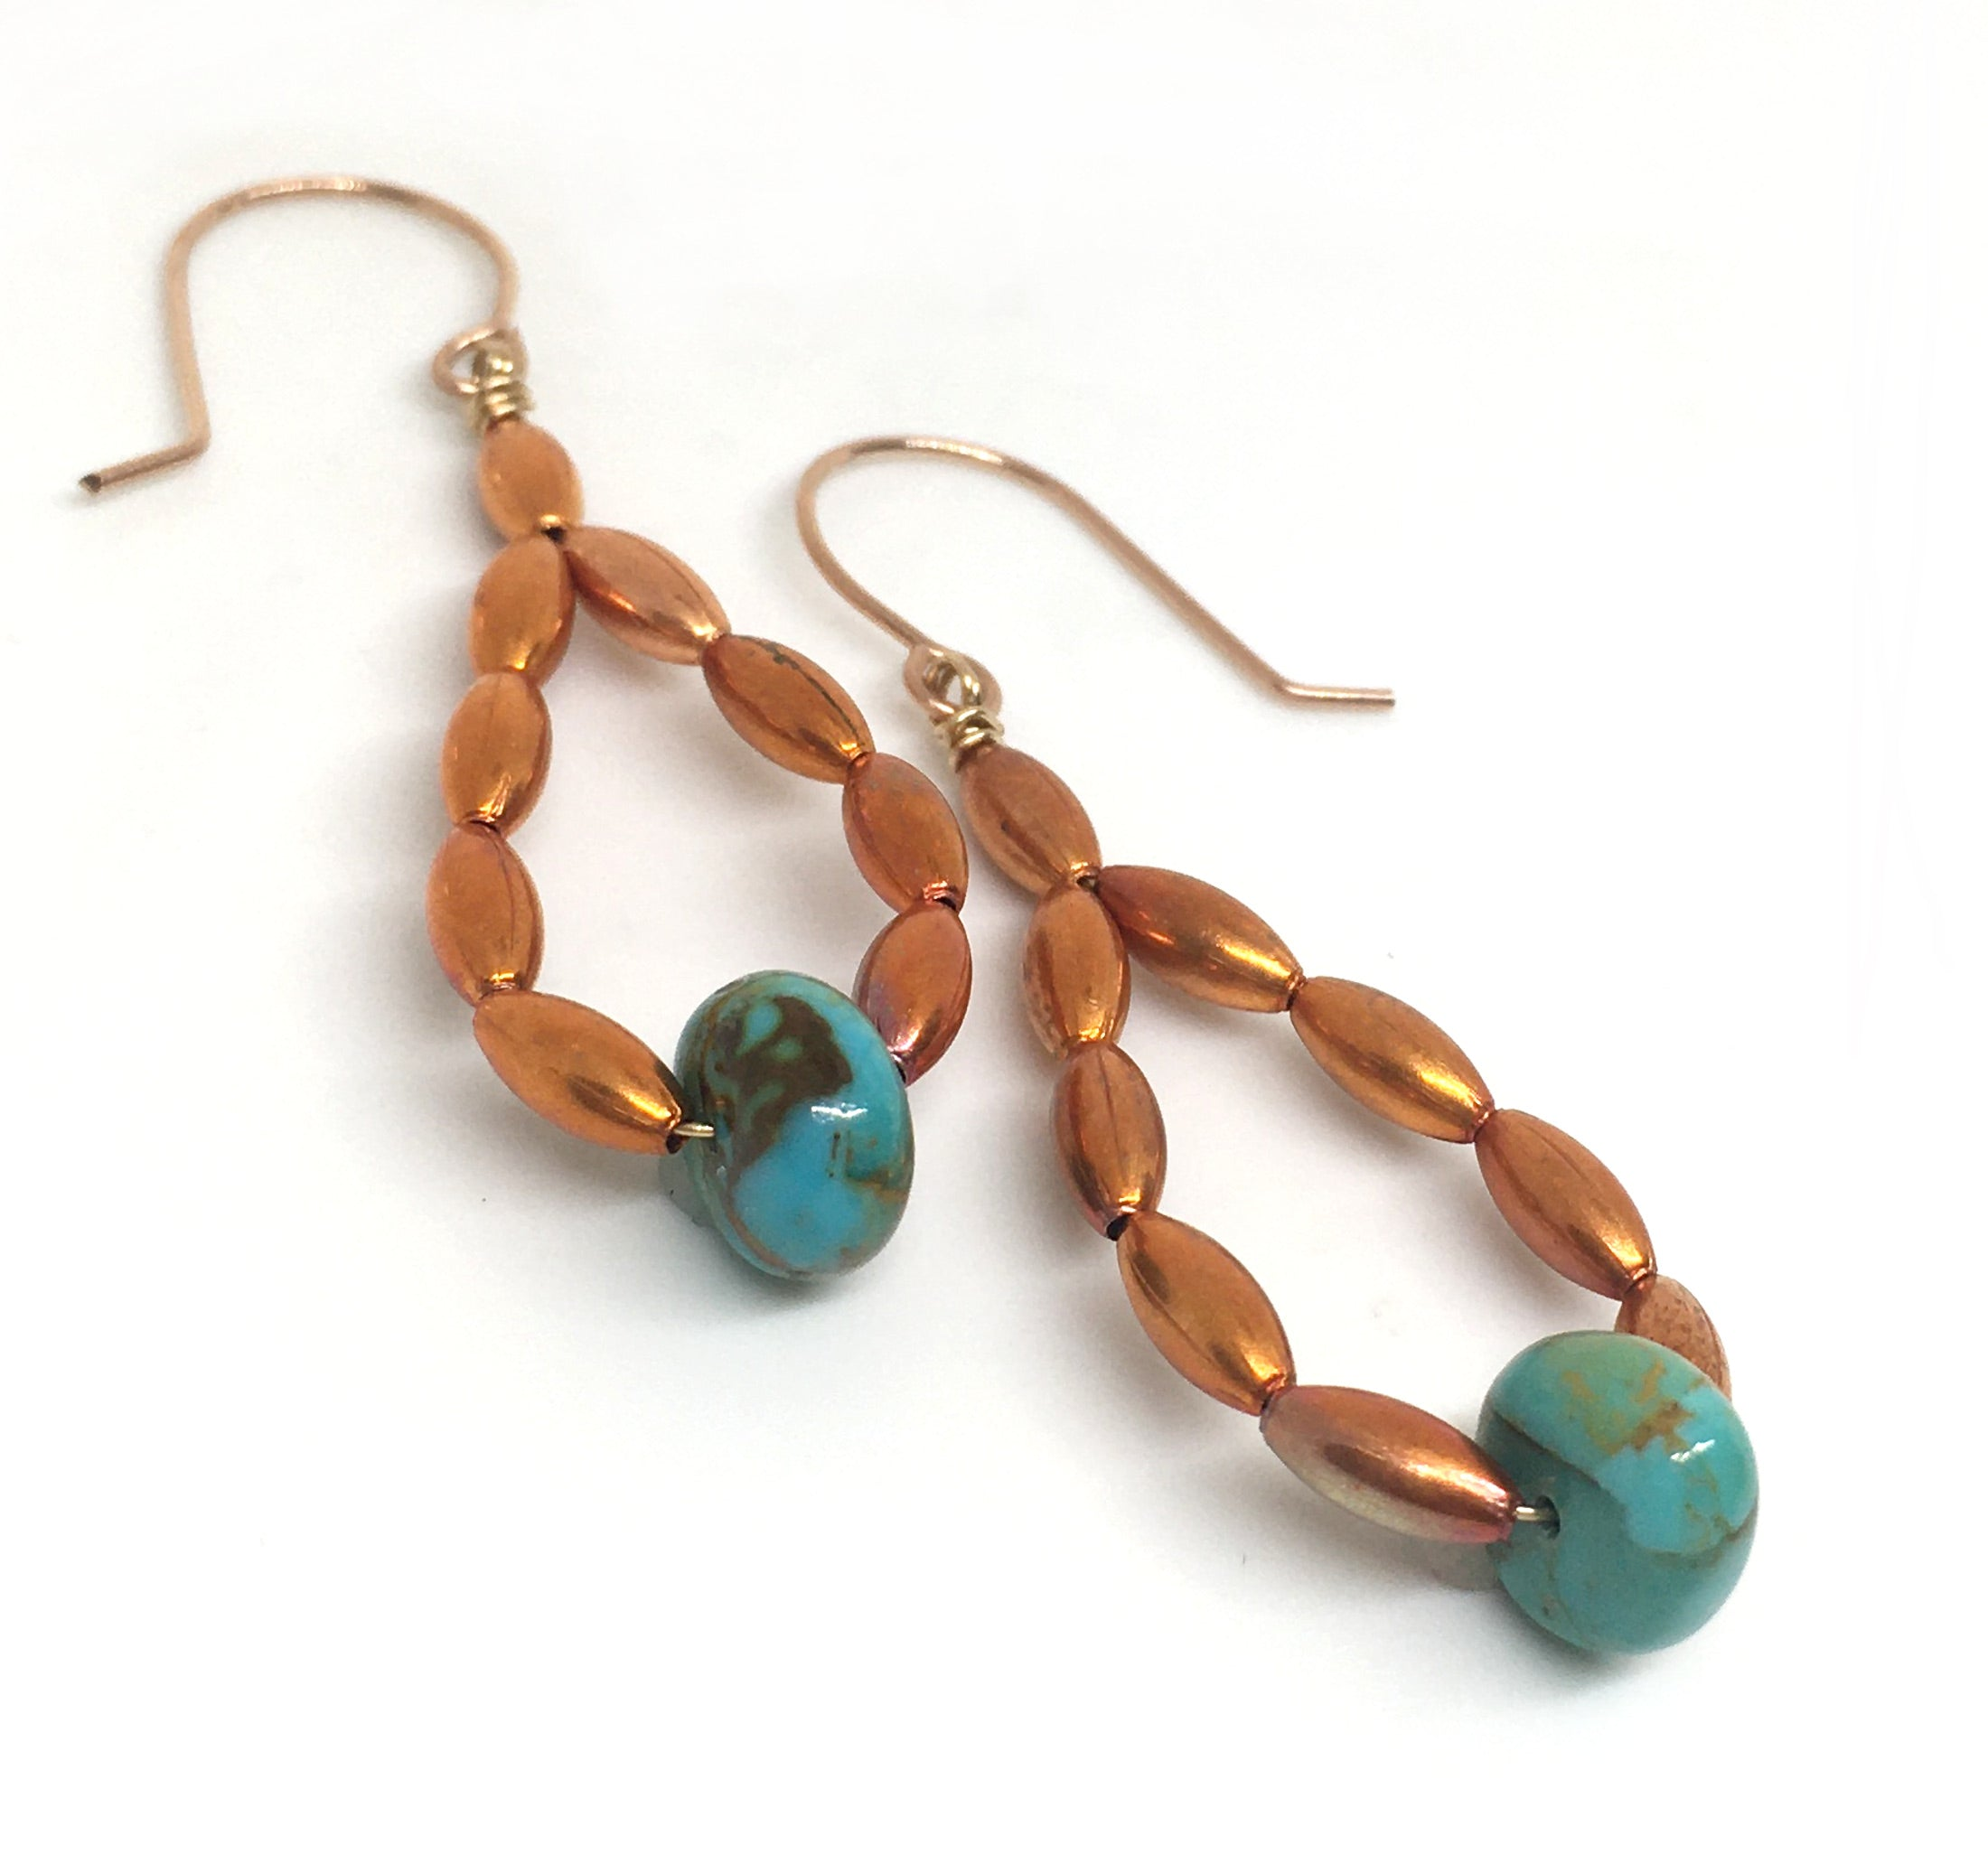 Kingman Turquoise and Flame Painted Oval Copper Bead Hoop Earrings - Sonoran Sunset Collection